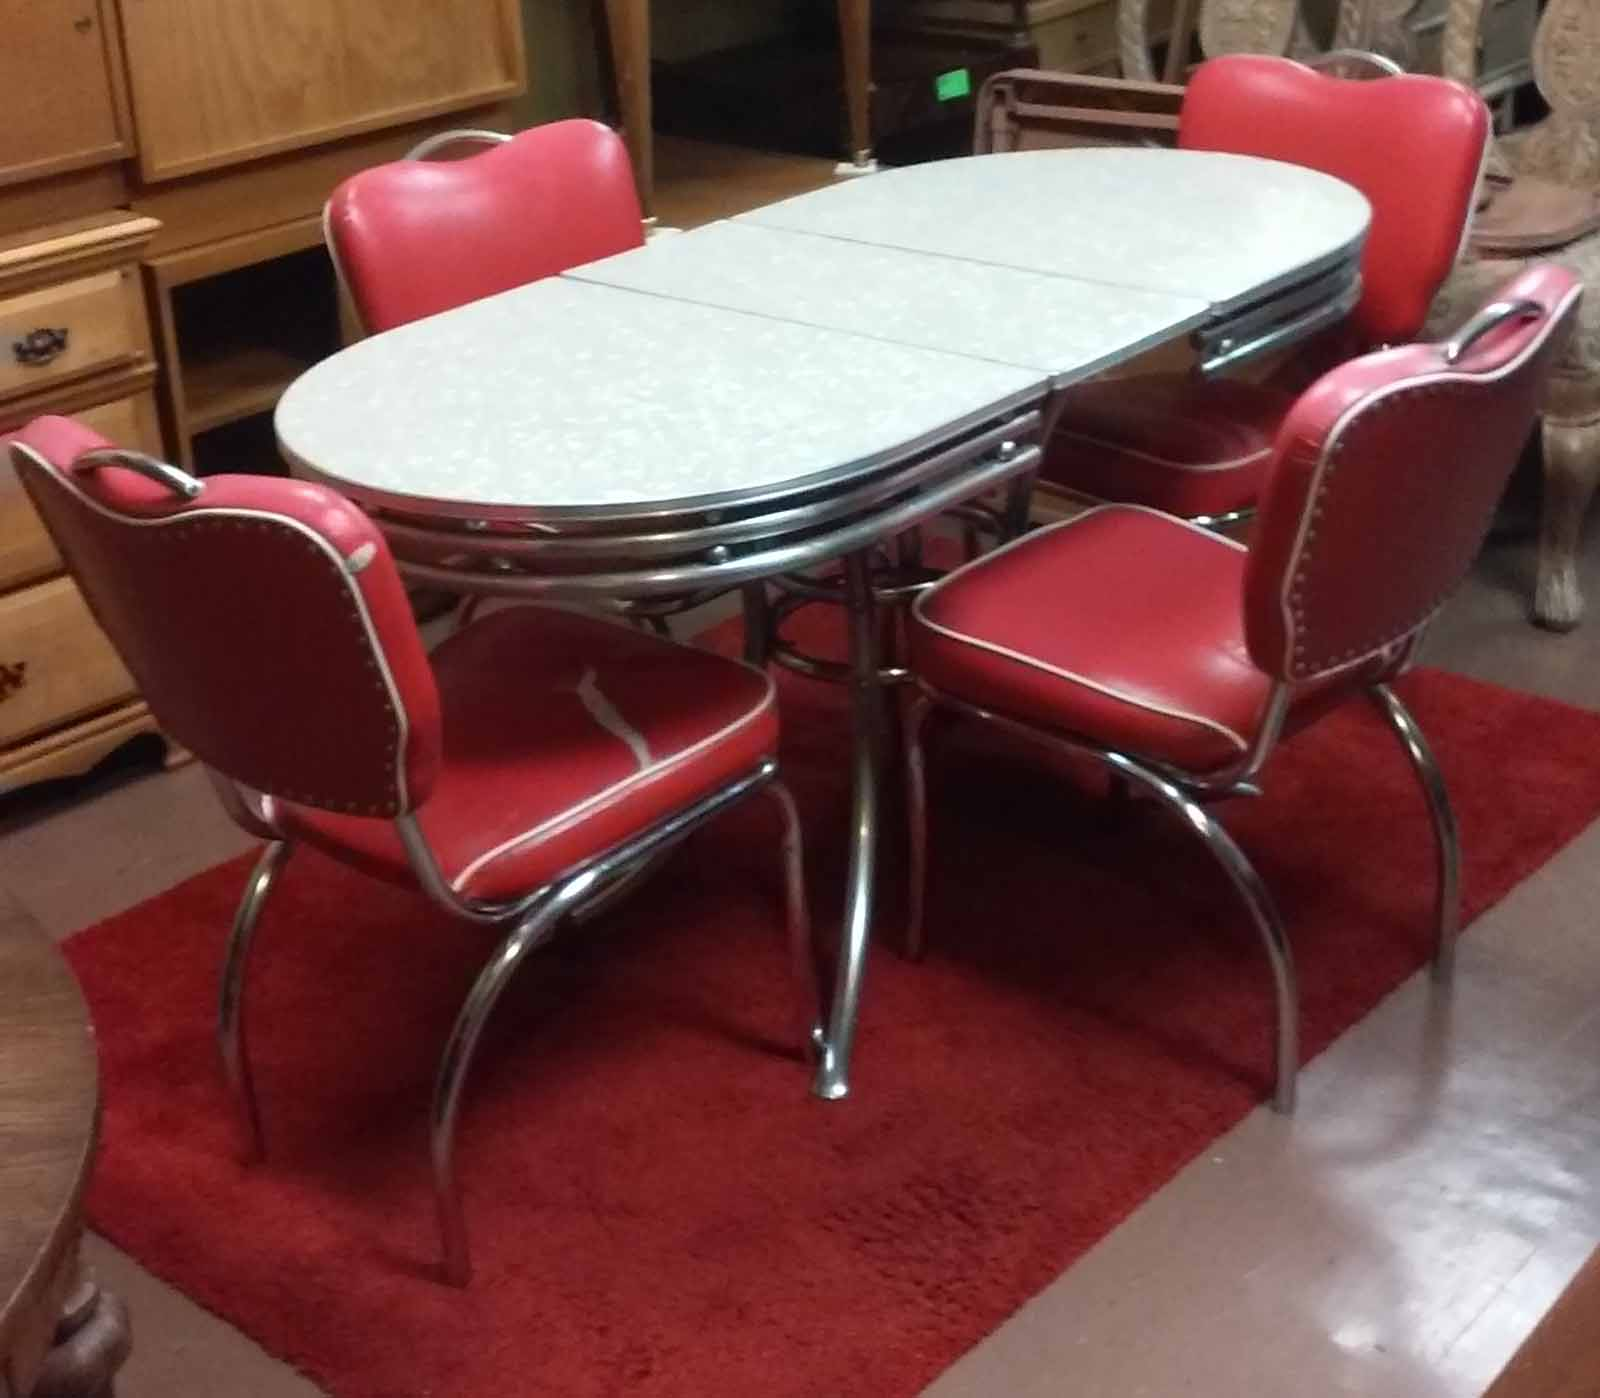 UHURU FURNITURE & COLLECTIBLES SOLD 50 s Style Chrome Table with